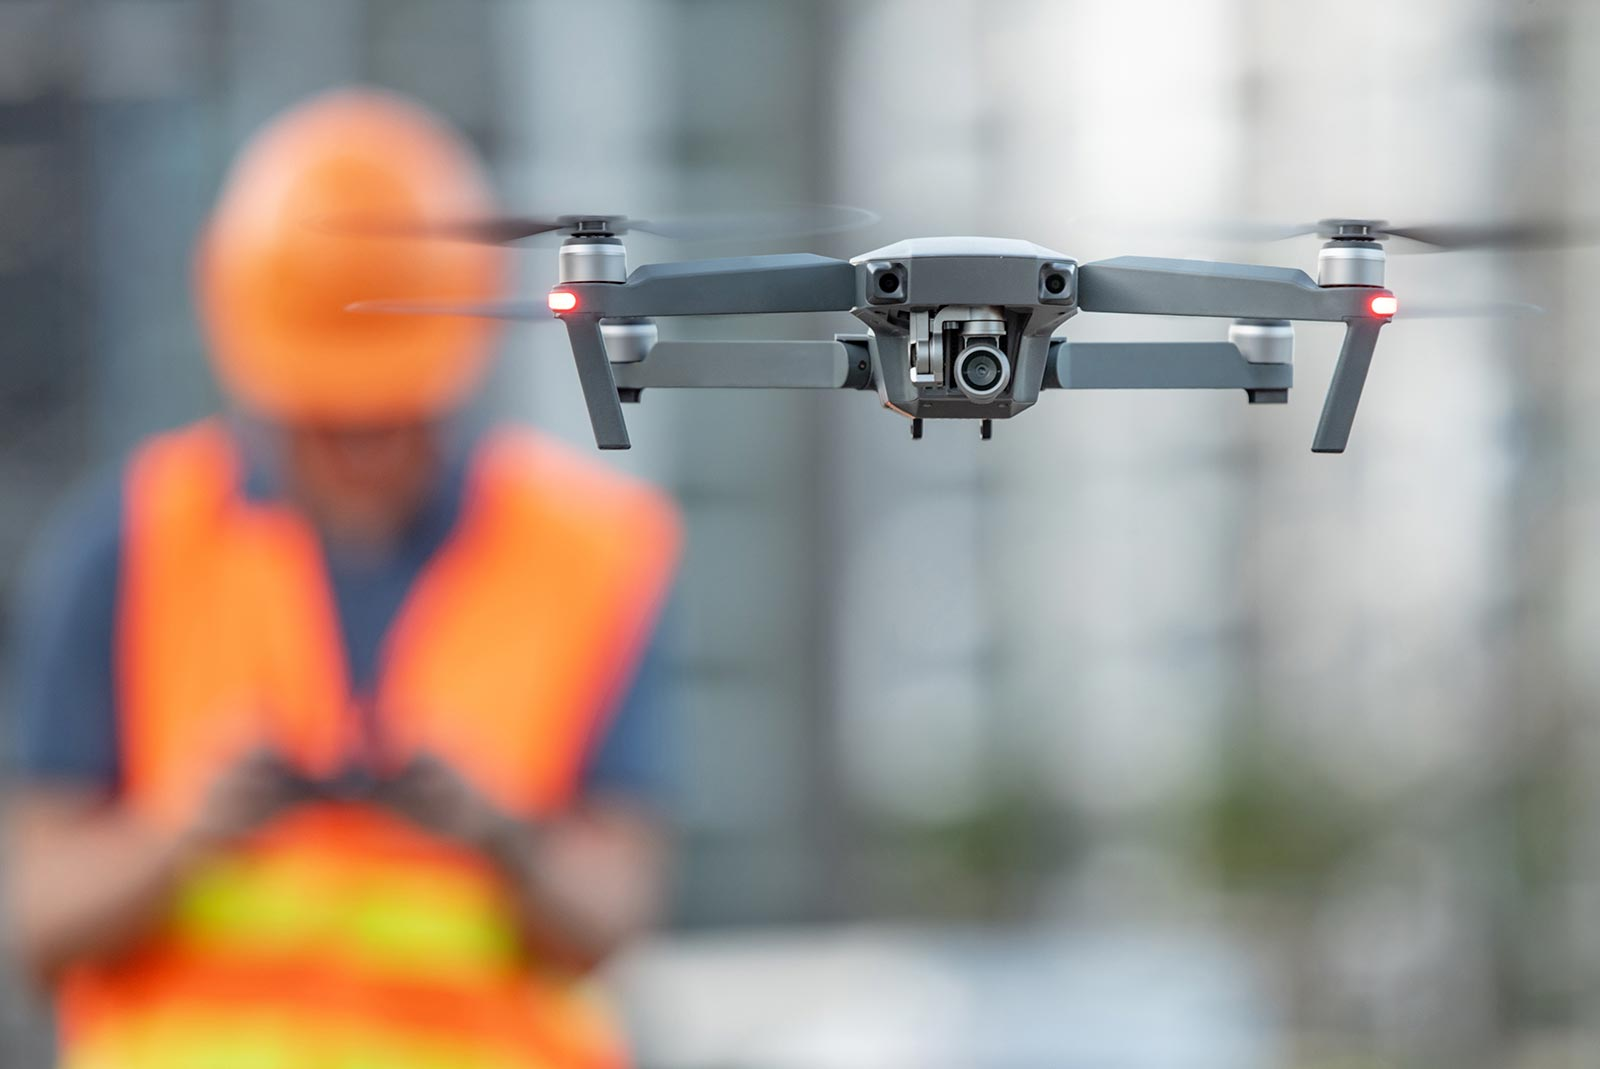 B-roll - A worker controls a drone to take photos of construction site